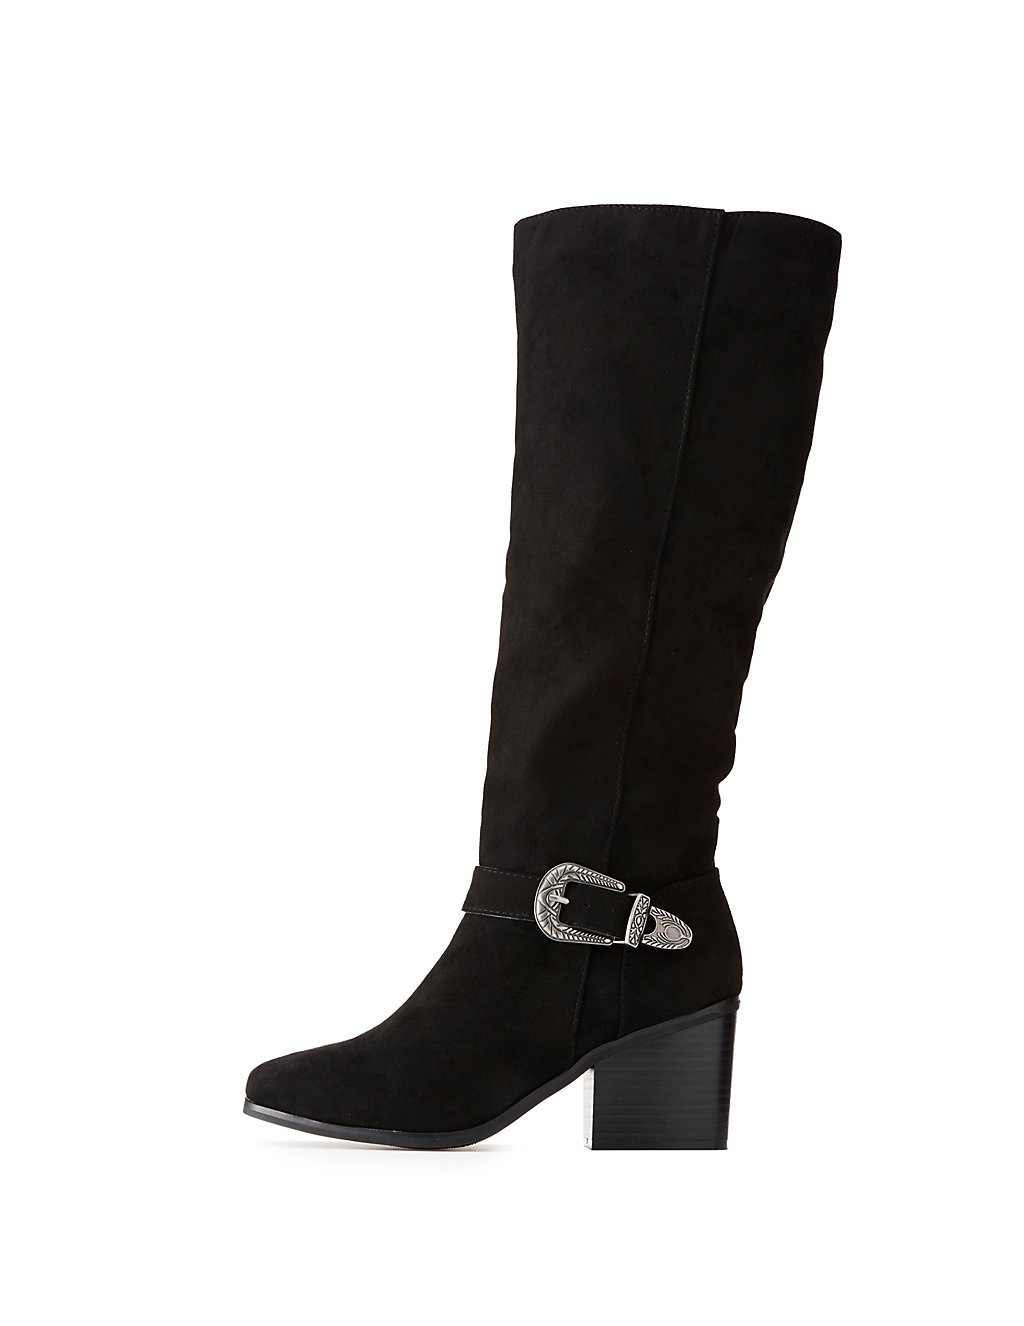 Opening Ceremony Woman Bukled Suede Over-the-knee Boots Black Size 40 Opening Ceremony CeAwdR5J